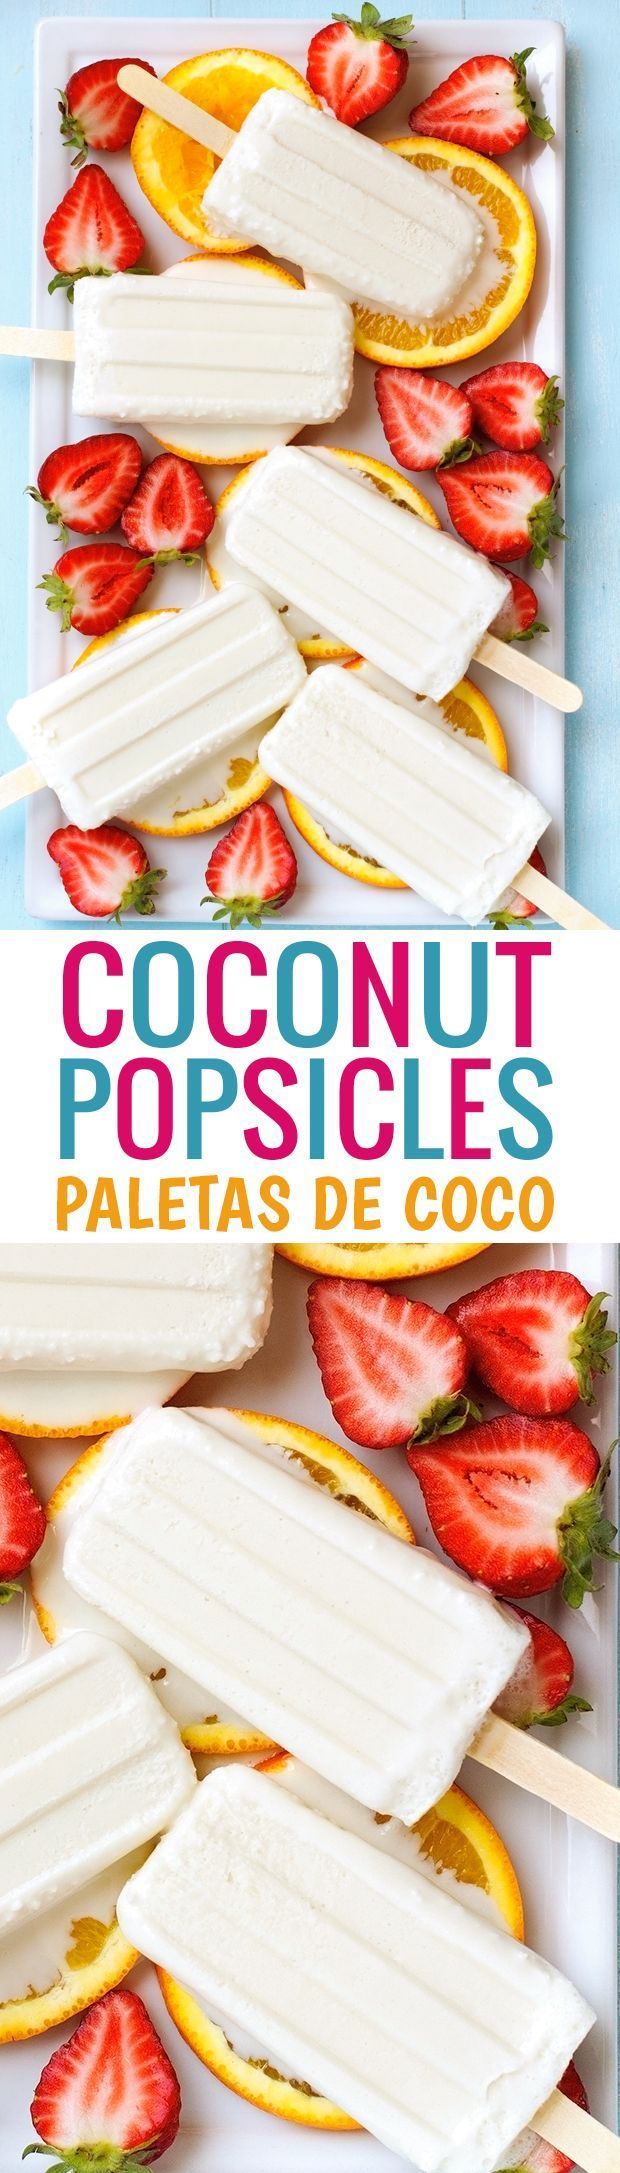 Coconut Popsicles - Made with just 4 INGREDIENTS, these are the best coconut creamsicles ever! #coconutpopsicles #coconutcreampopsicles #paletasdecoco | http://Littlespicejar.com